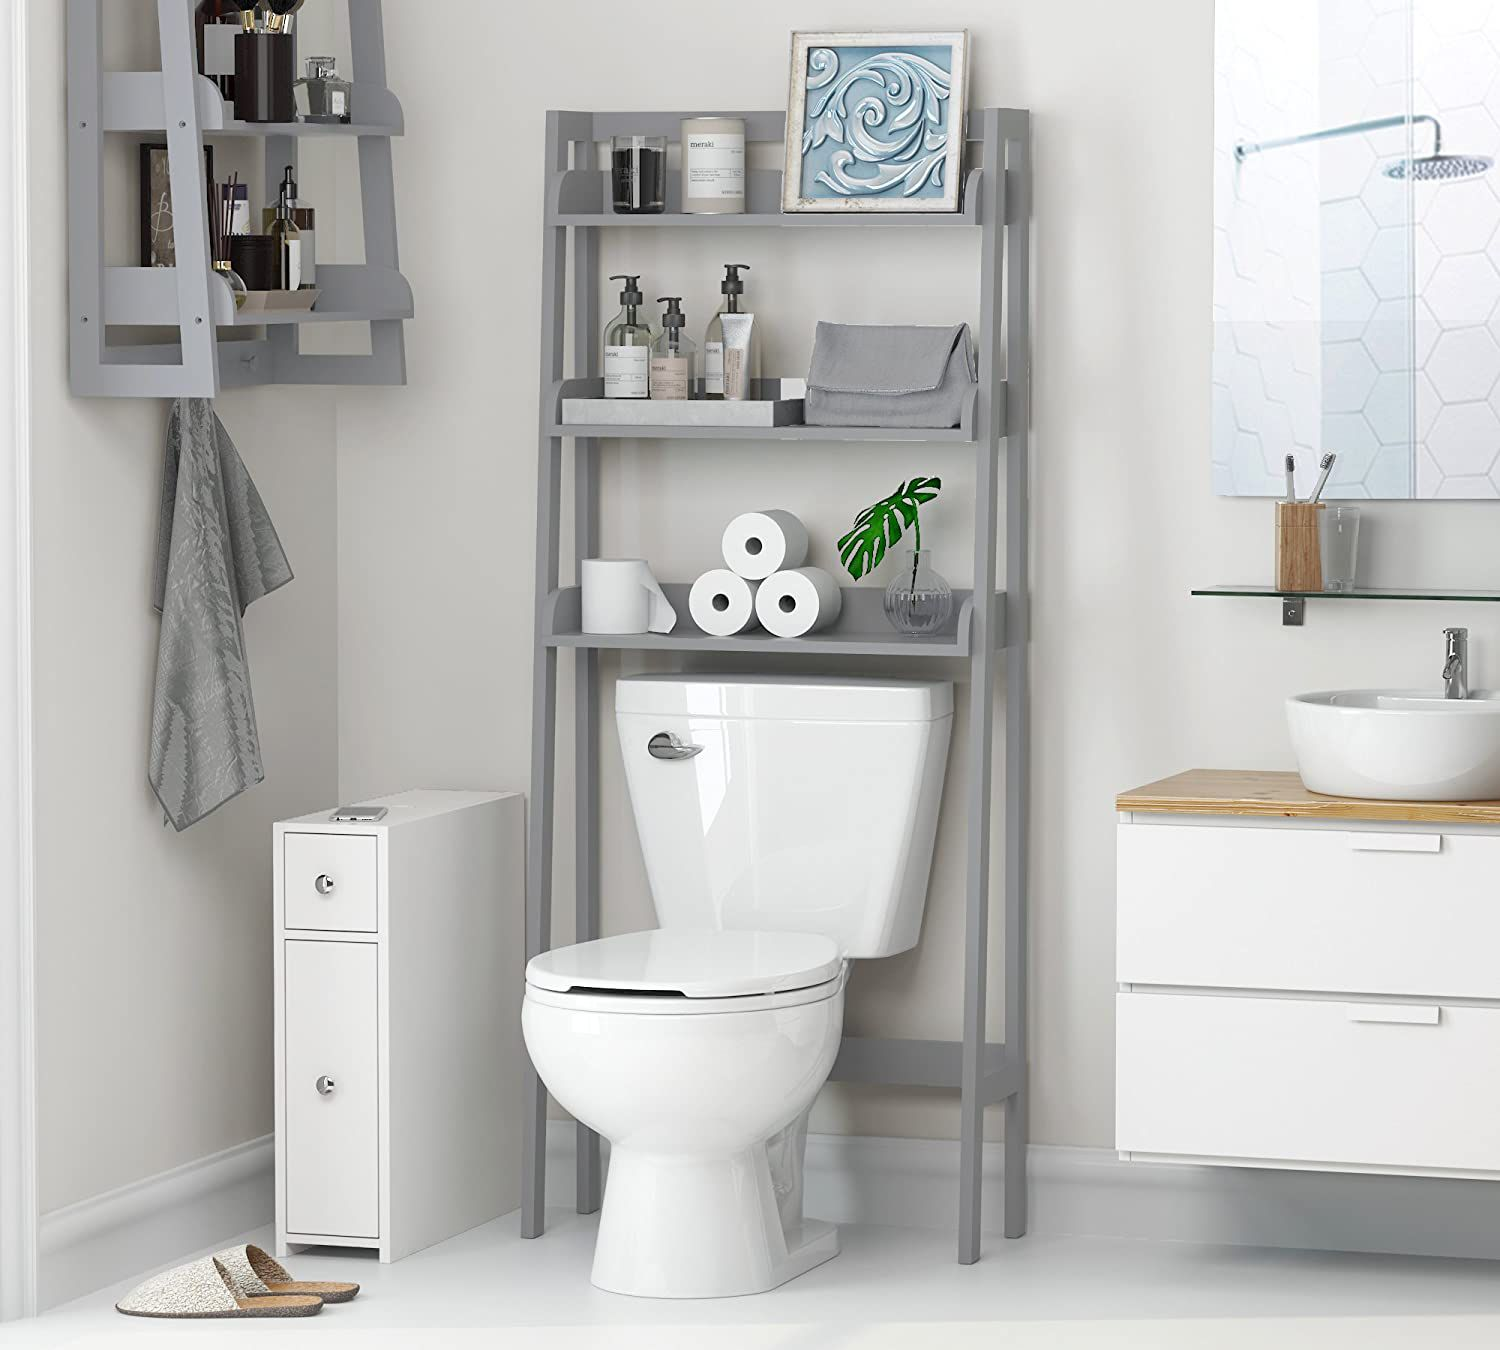 The Toilet Storage Units, White Over The Toilet Cabinet With Towel Bar